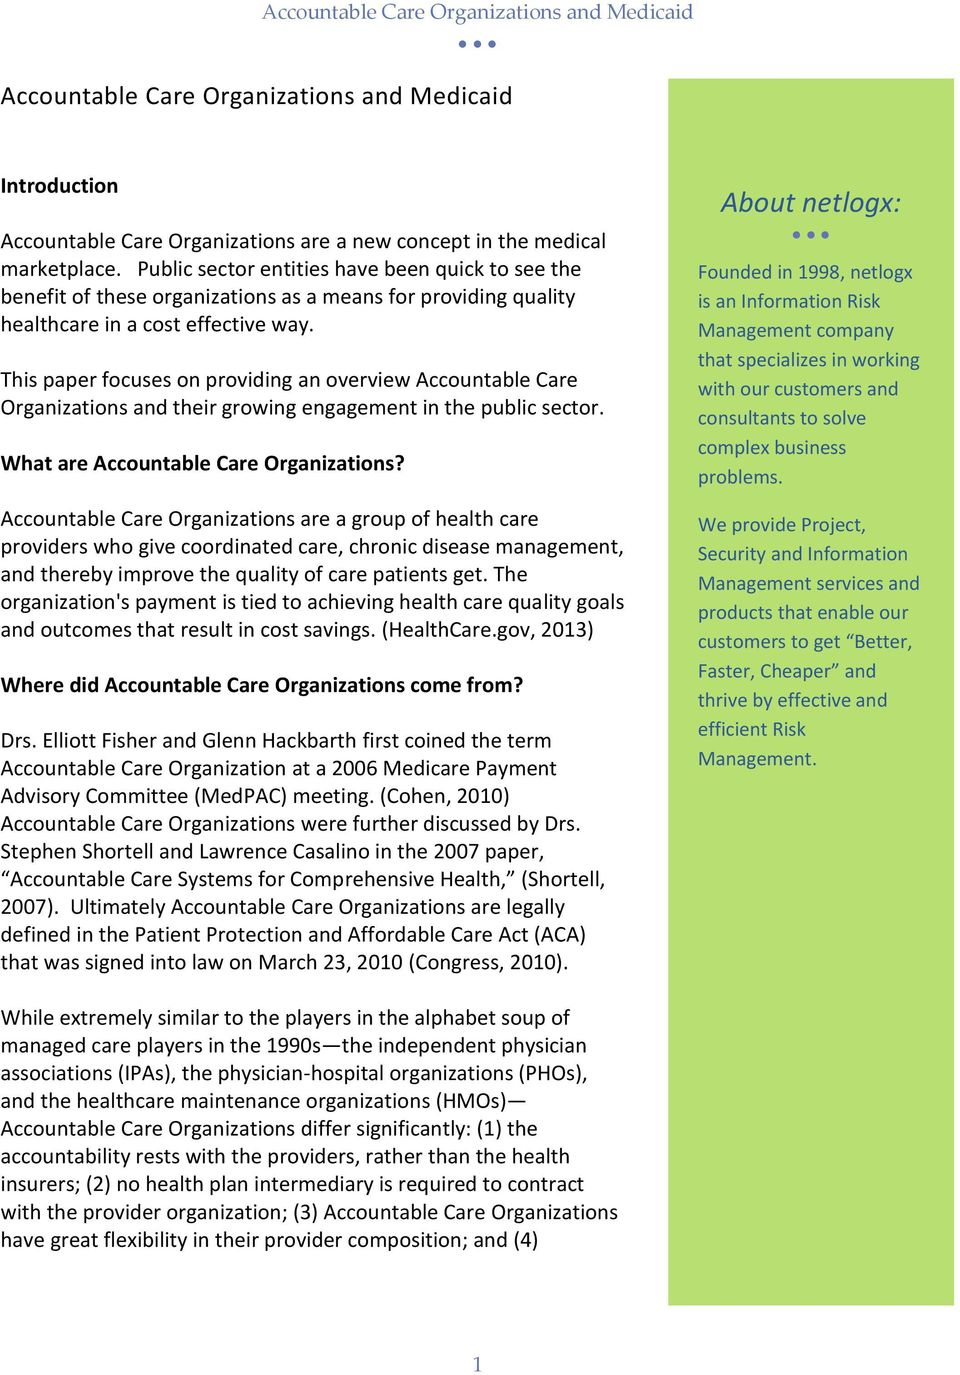 This paper focuses on providing an overview Accountable Care Organizations and their growing engagement in the public sector. What are Accountable Care Organizations?